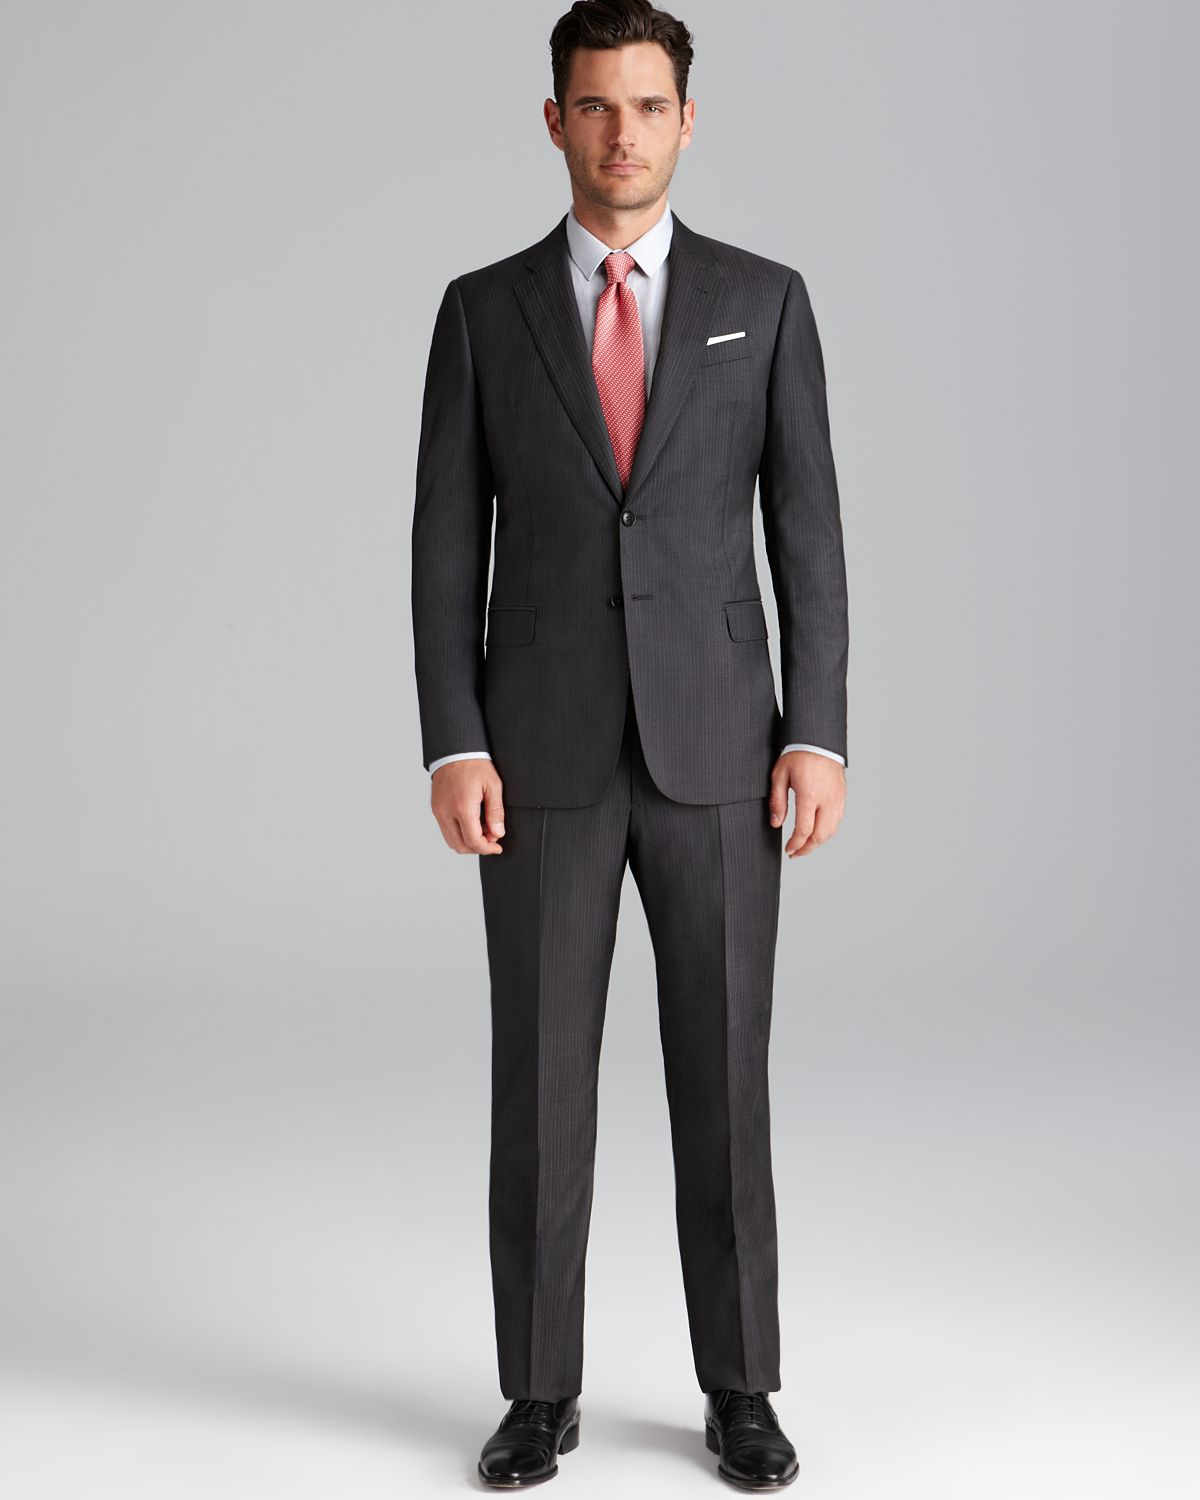 regular fit suit example